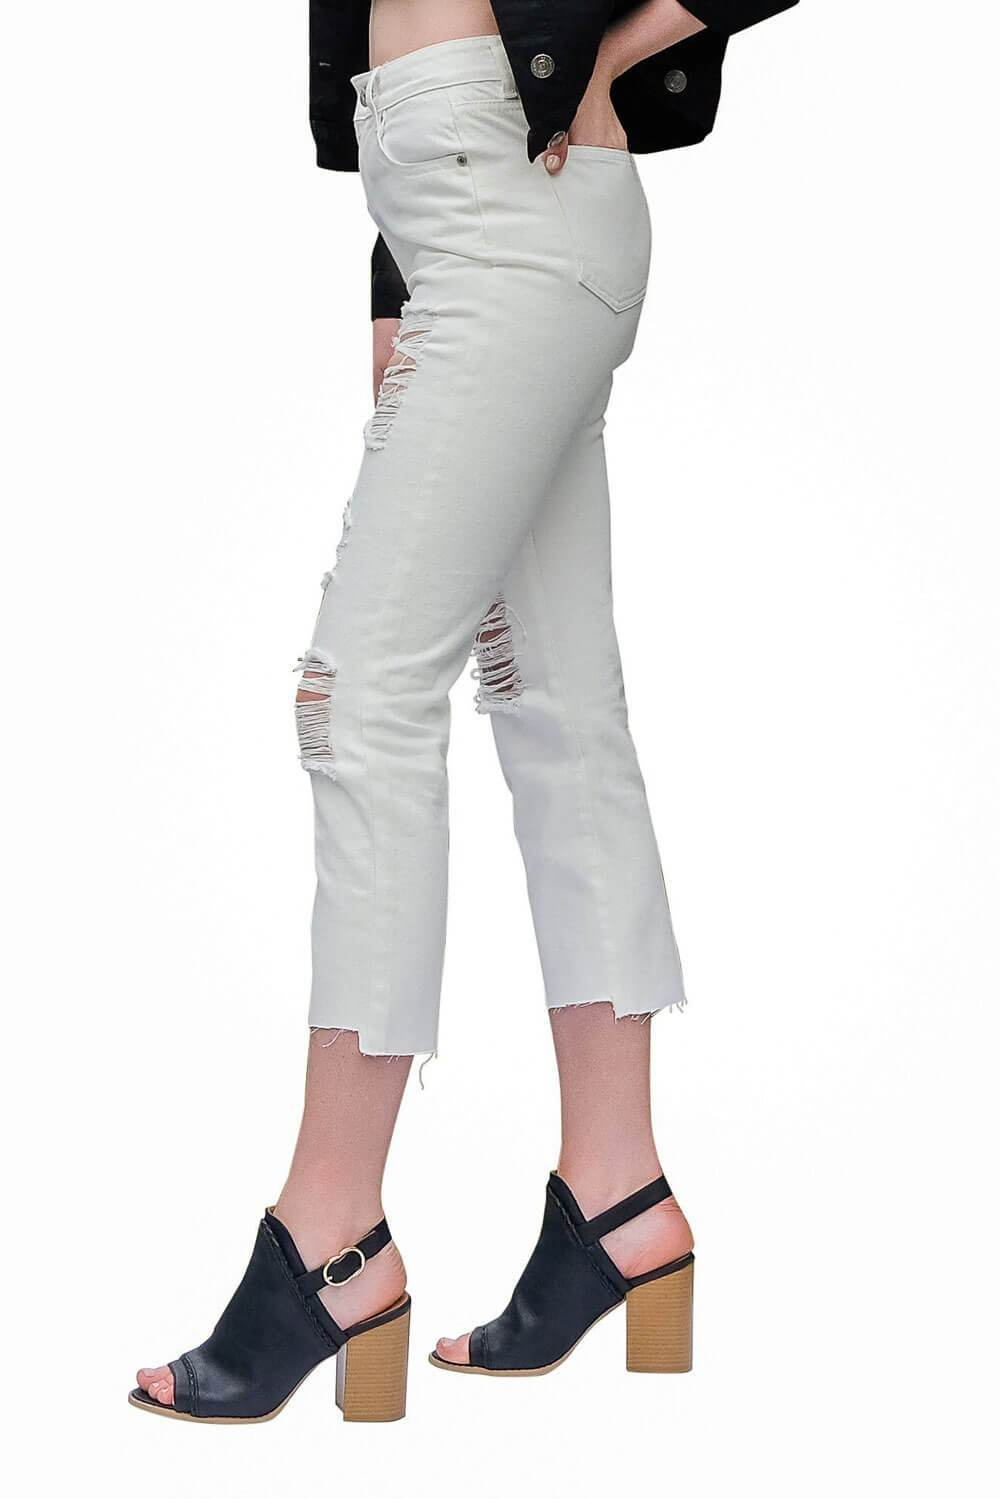 Distressed Boyfriend White Jeans side - MILK MONEY